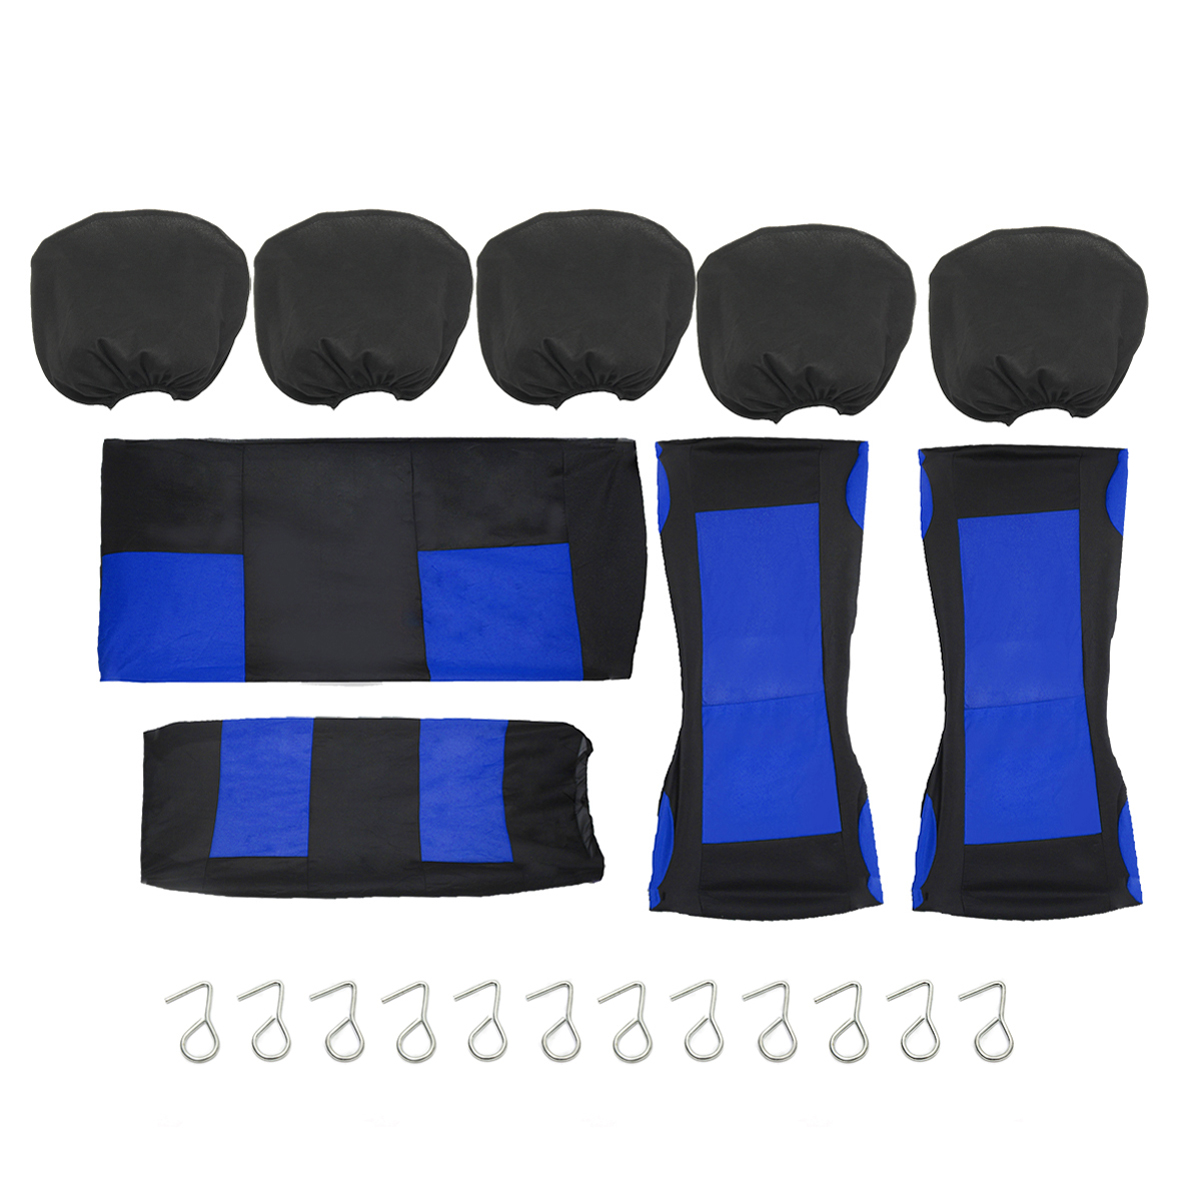 9Pcs/set Universal Car Seat Cover + carseatcover Hooks Full Set For Auto Front + Rear Seat Headrests